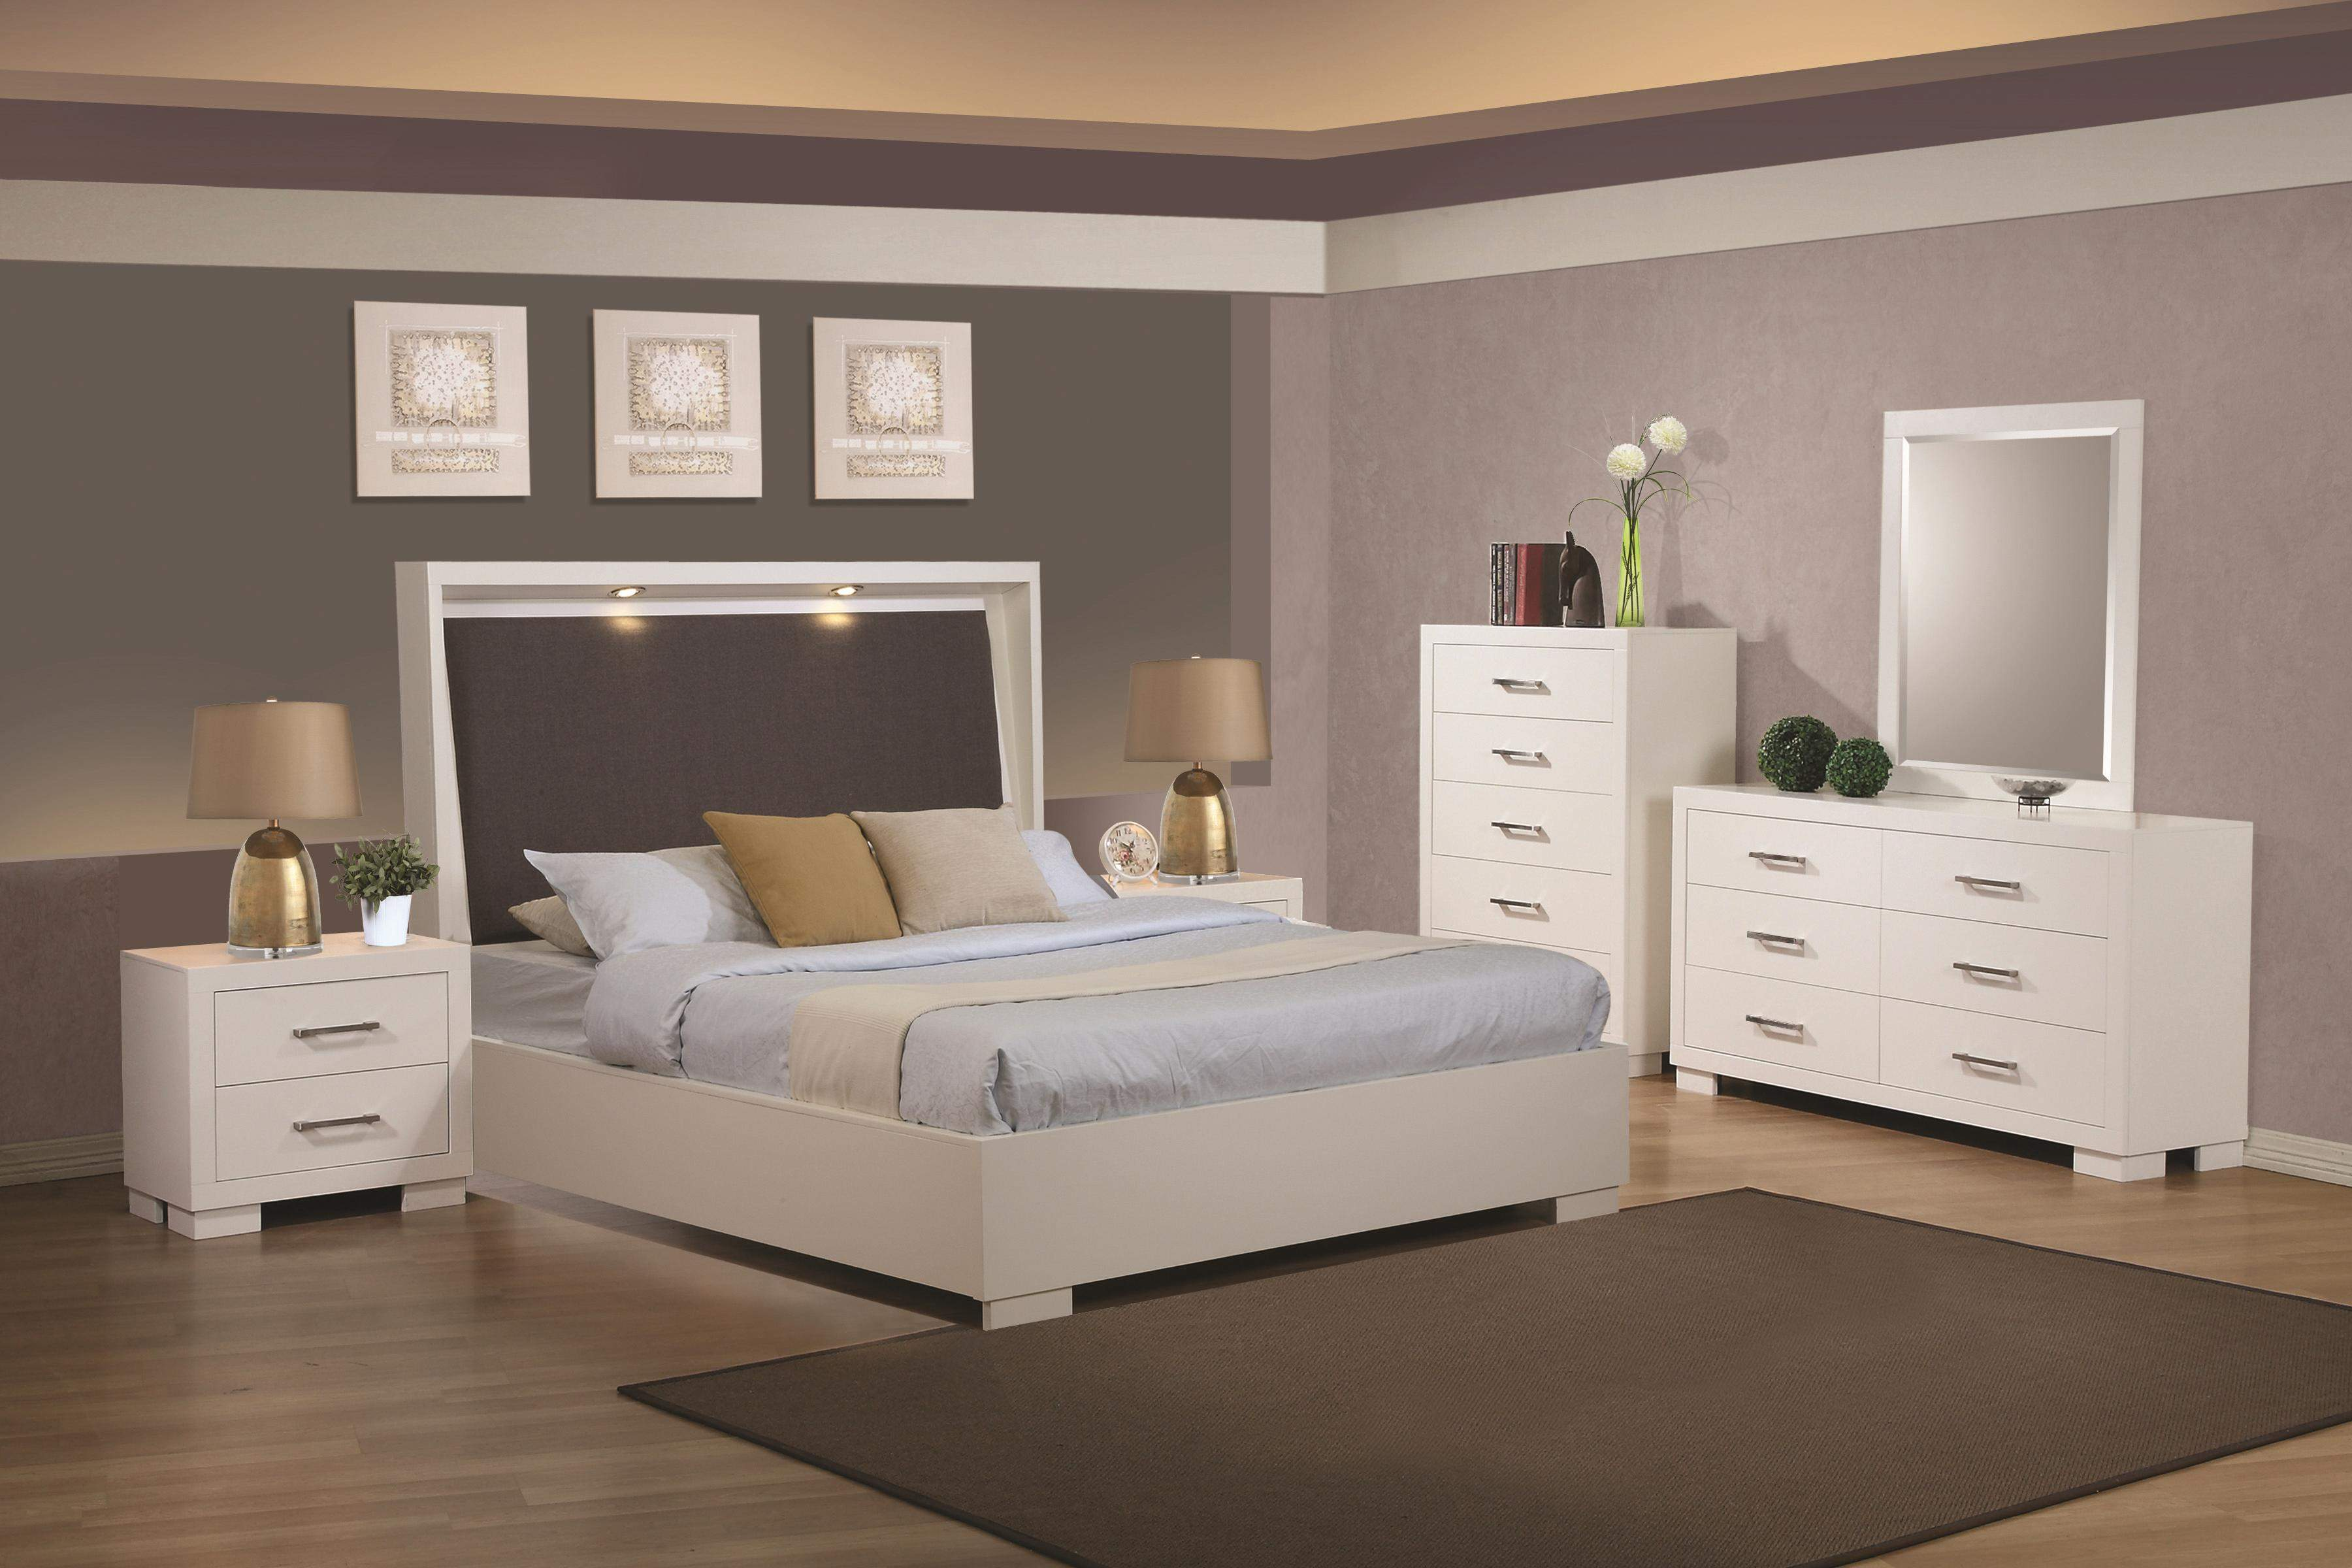 Jessica by coaster 4 piece bed set quality furniture at affordable prices in philadelphia main - Jessica bedroom set ...